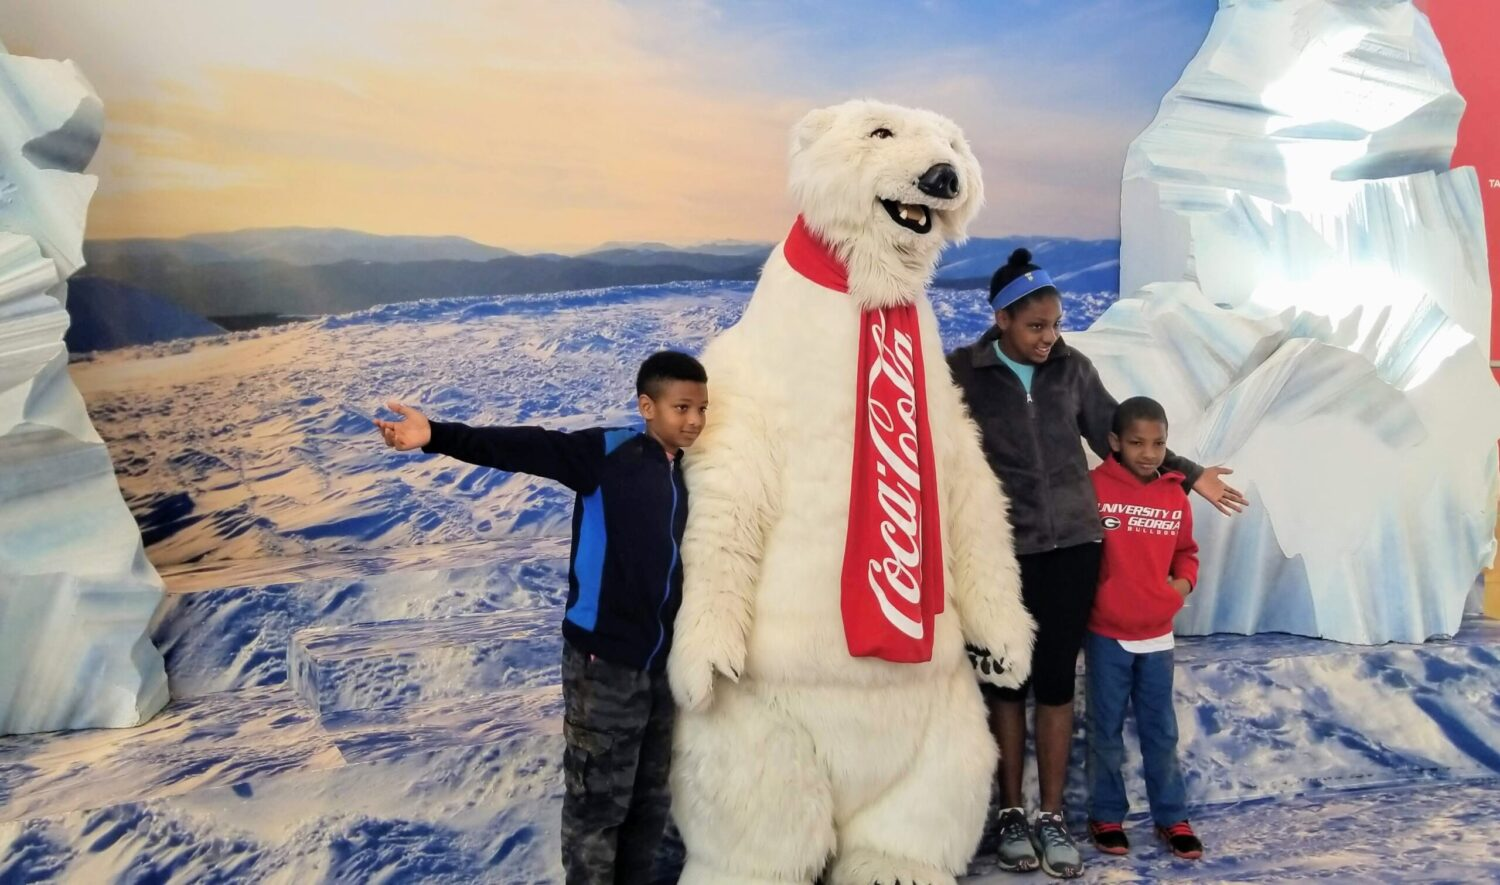 The World of Coca-Cola is one of the best things to do in Atlanta with kids.